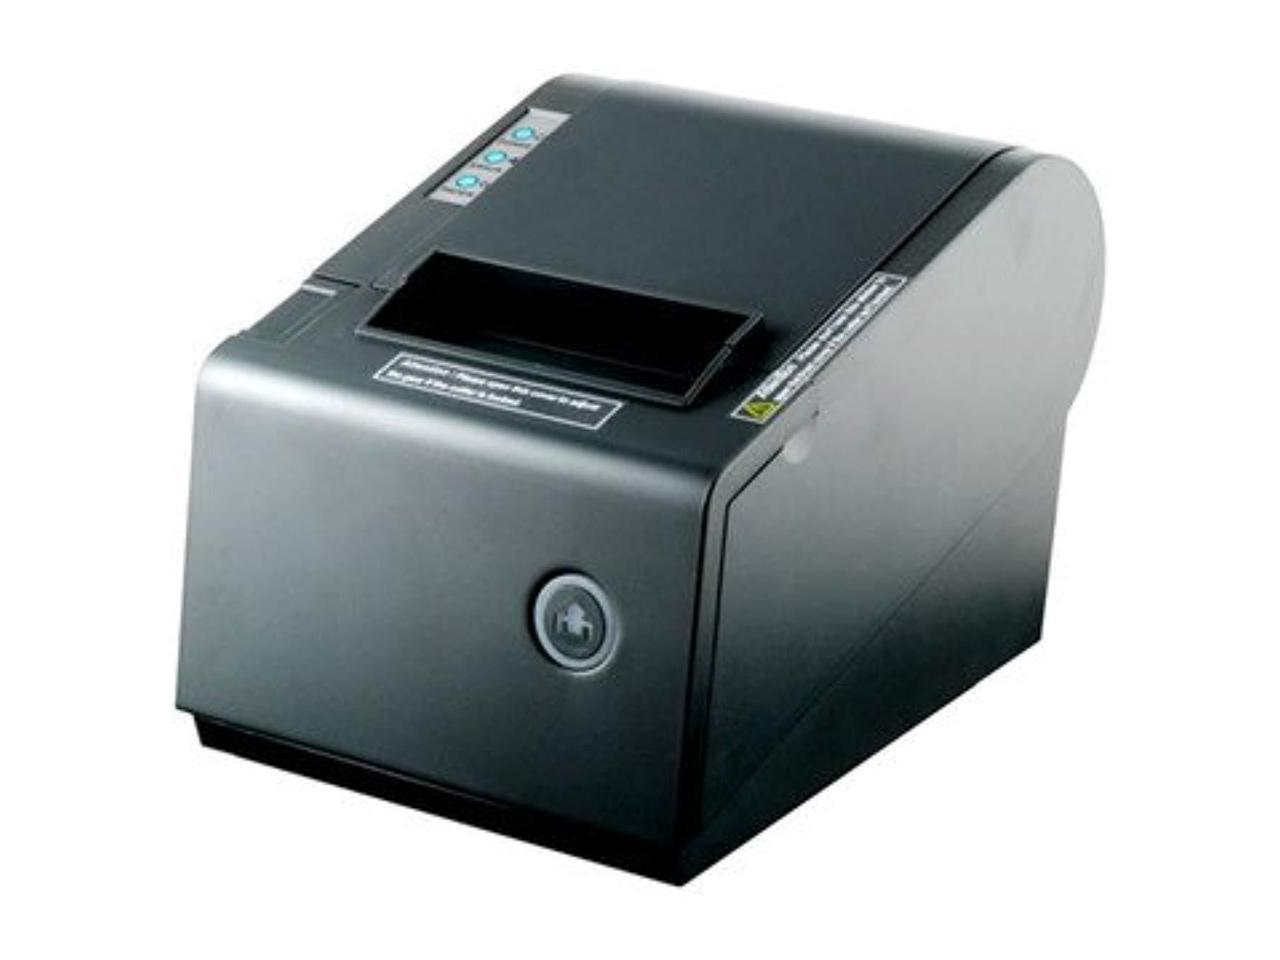 supports ESC//POS Star Commands AUTO CUT POS P-822D 3 1//8 Thermal Receipt USB Printer compatible with EPSON Star Micronics